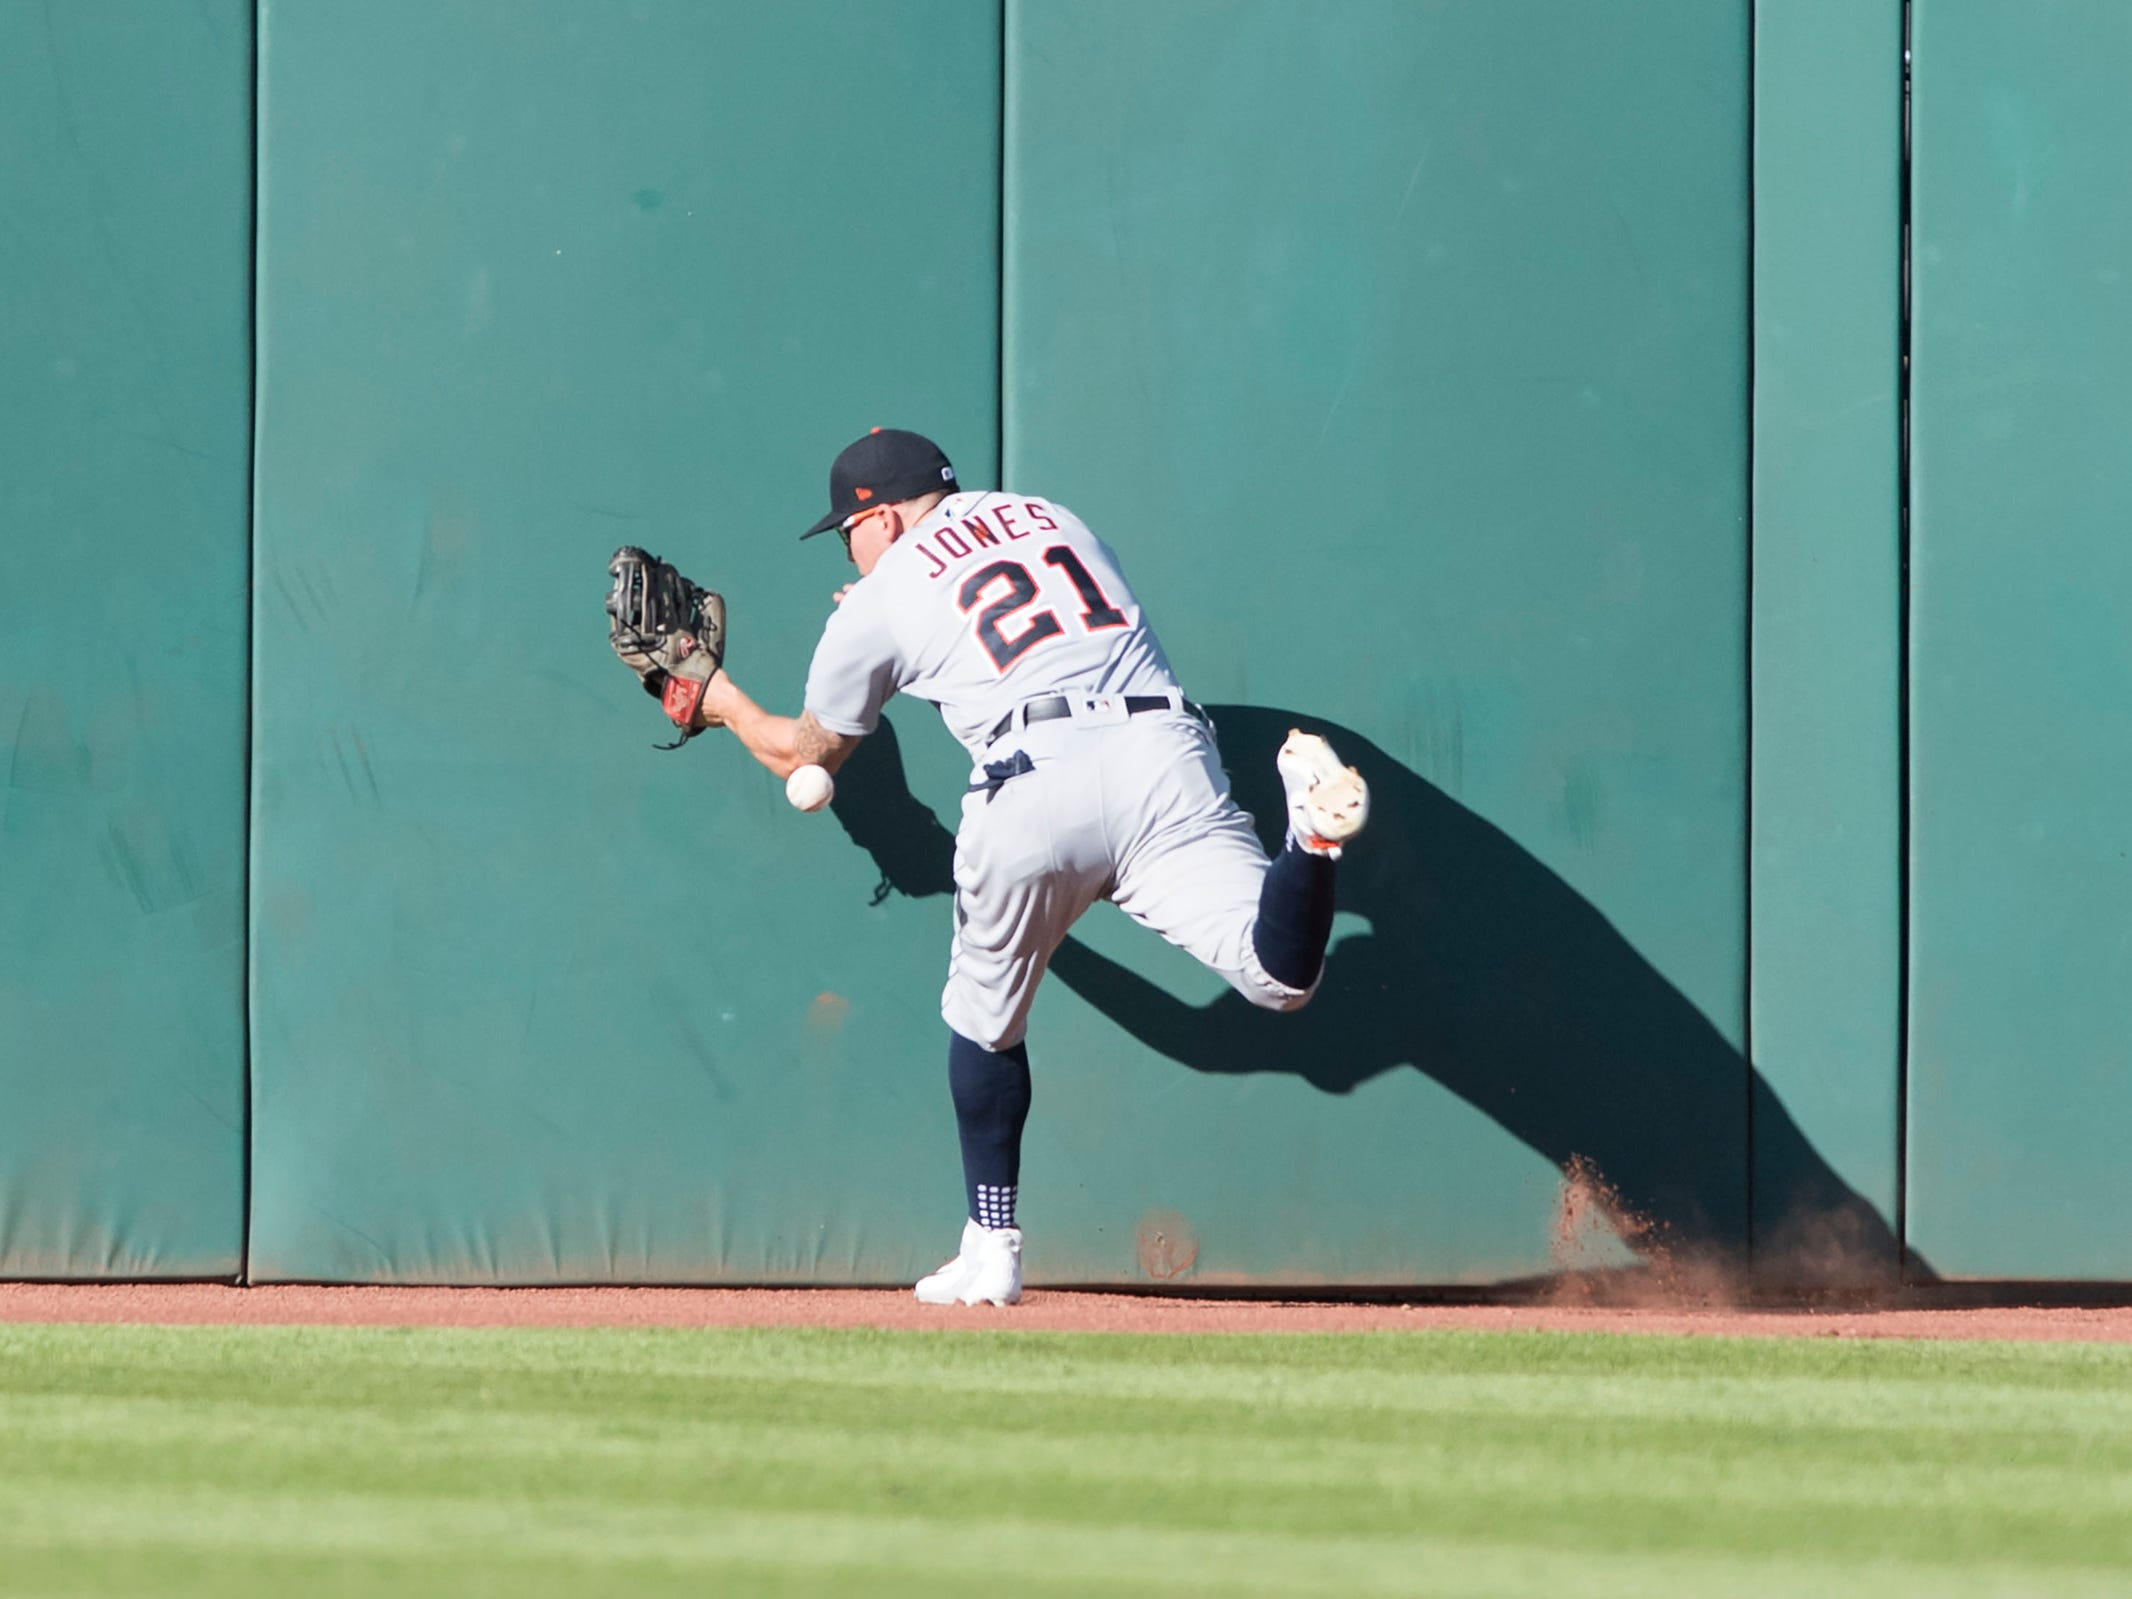 JaCoby Jones can not make the catch in center field on a triple hit by the Indians during the fourth inning of the Tigers' 15-0 loss Saturday, Sept. 15, 2018, in Cleveland.